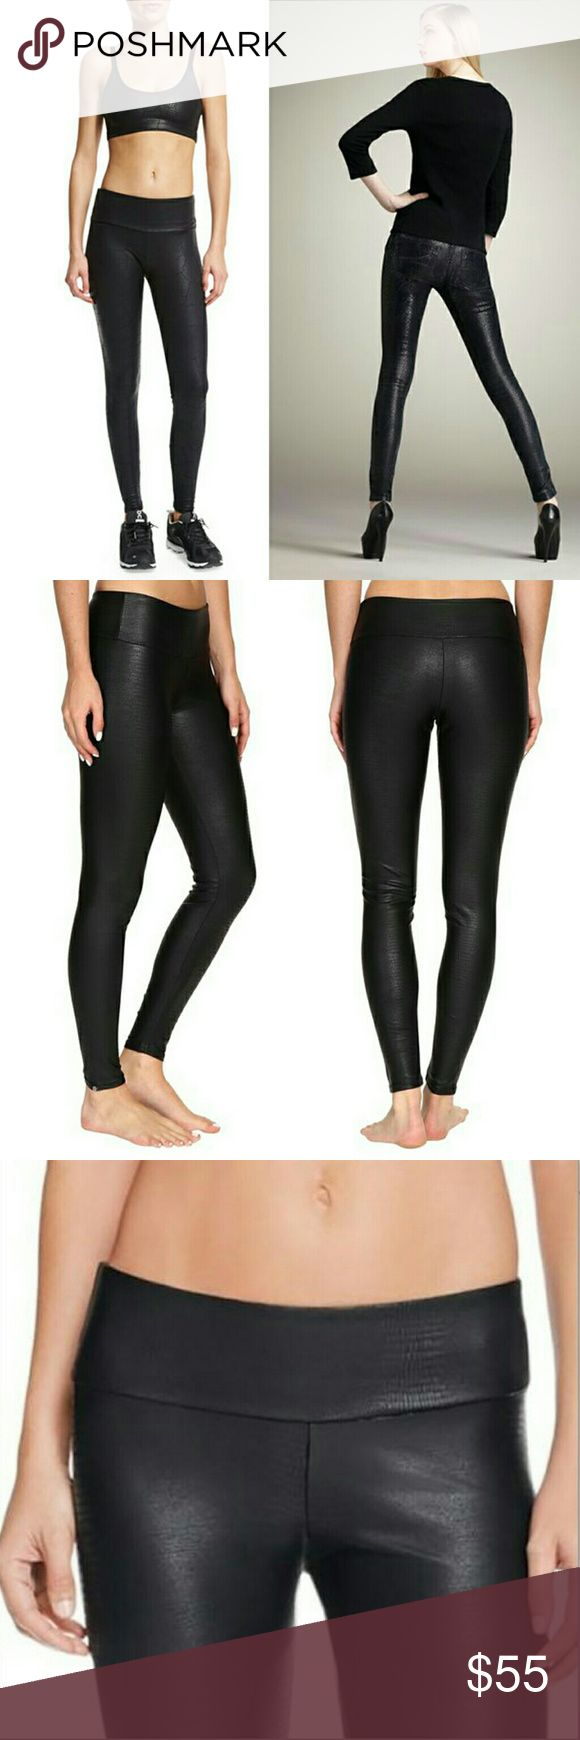 """NWT Onzie high-rise snake embossed legging Great for work or play, these makes-your-butt-look-amazing leggings have a subtly embossed snake print. The legging itself is matte black spandex but the embossing is shiny. 28""""inseam, 9"""" rise, 31"""" waist with a lot of give. This is a size M/L.  Also, I bought these directly from the manufacturer, so they do not have a price tag, but they are in the factory packaging. Onzie Pants Leggings"""